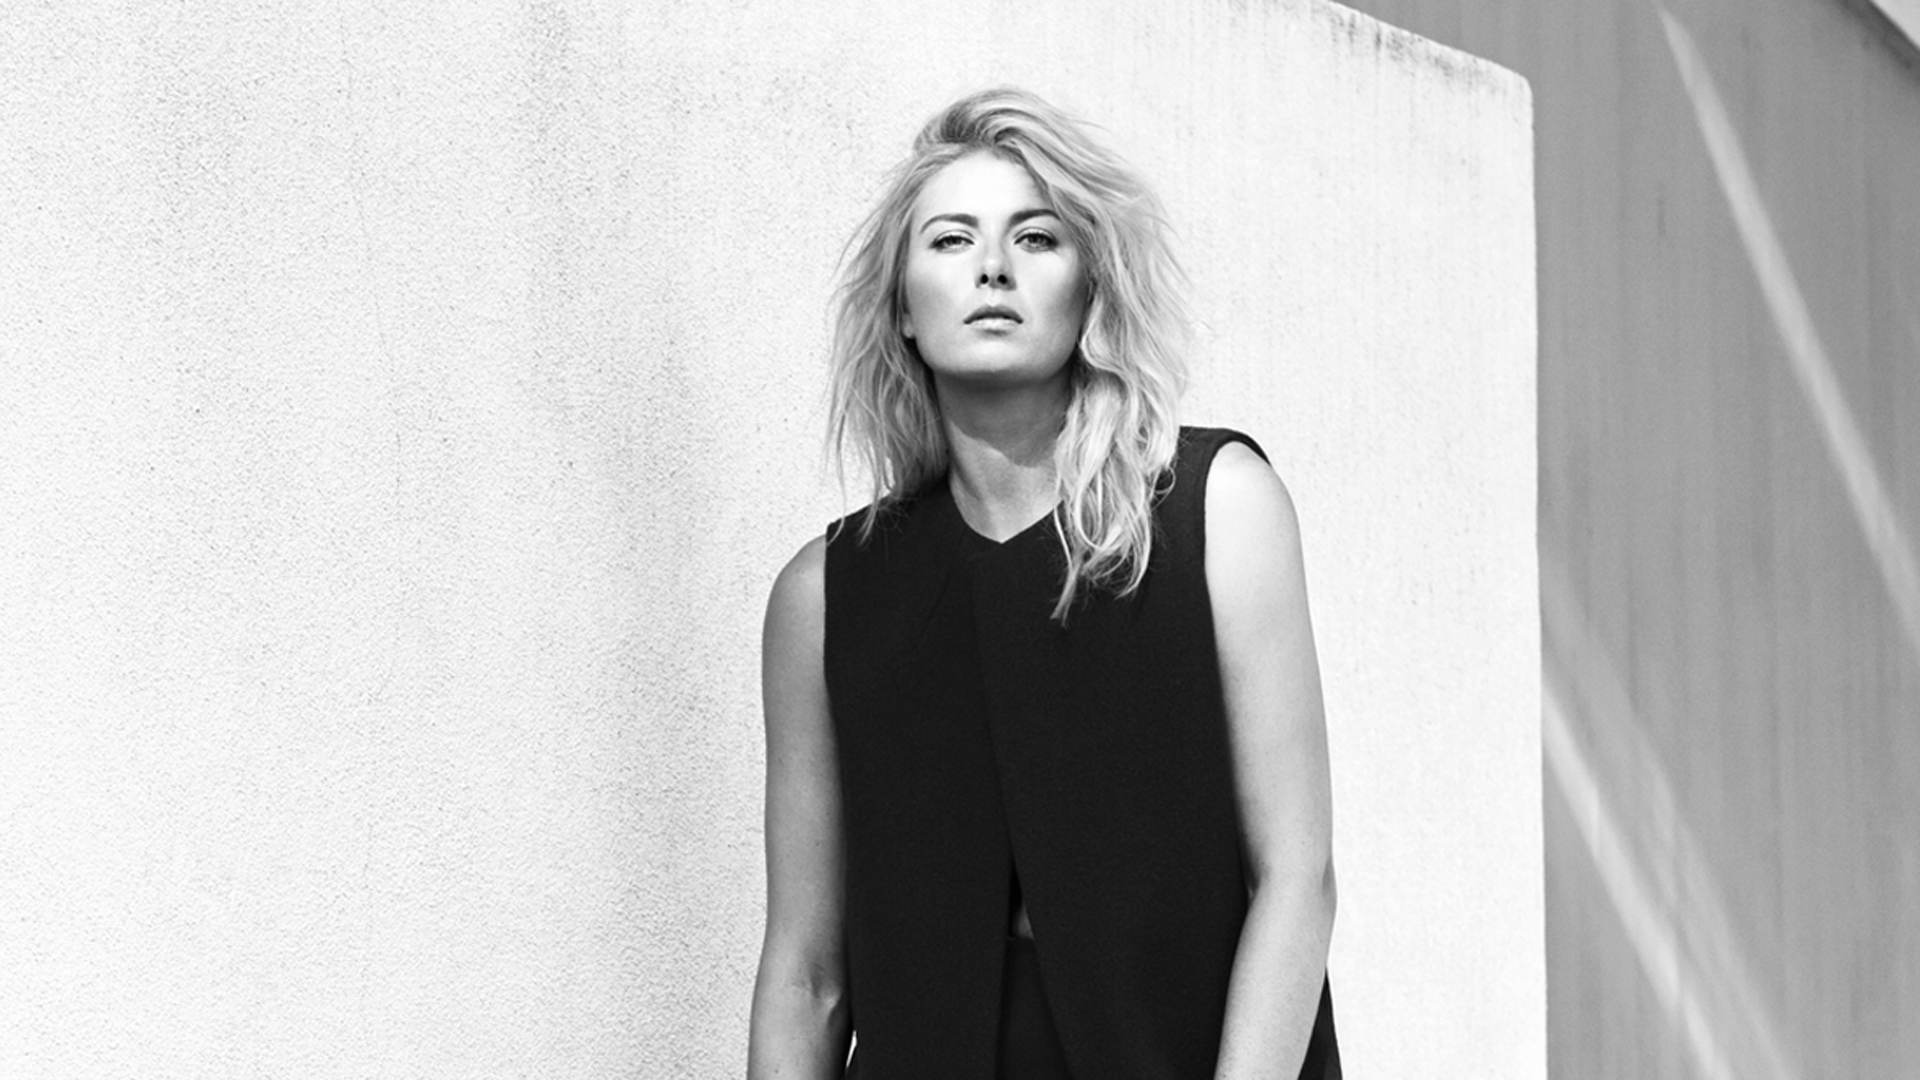 Black and White Maria Sharapova Wallpaper 65024 1920x1080px 1920x1080